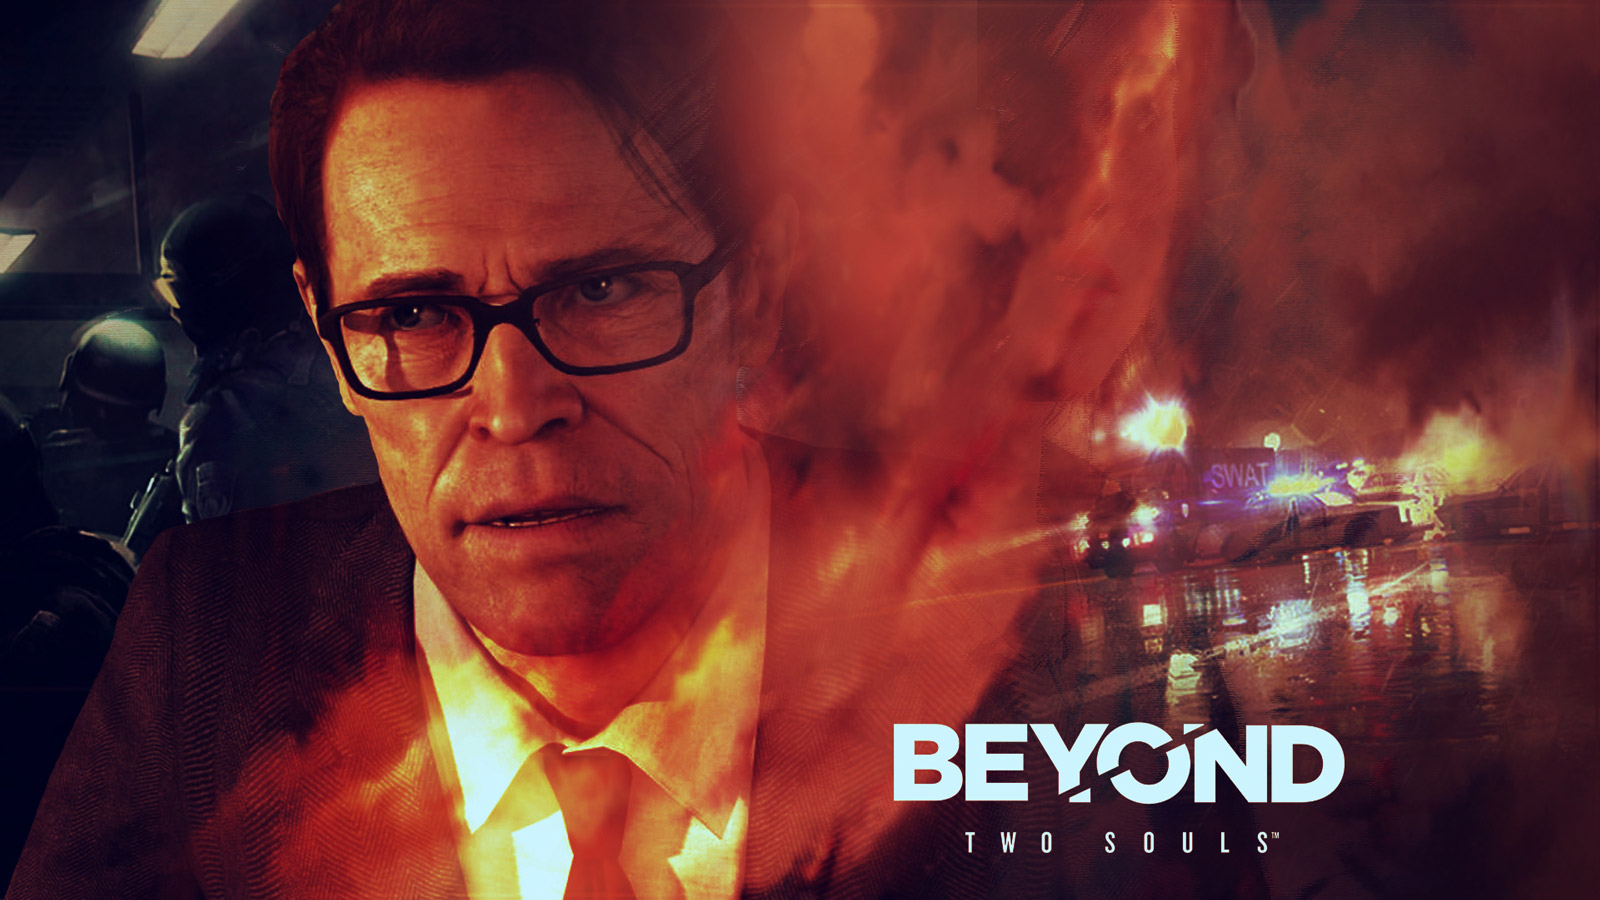 Free Beyond: Two Souls Wallpaper in 1600x900